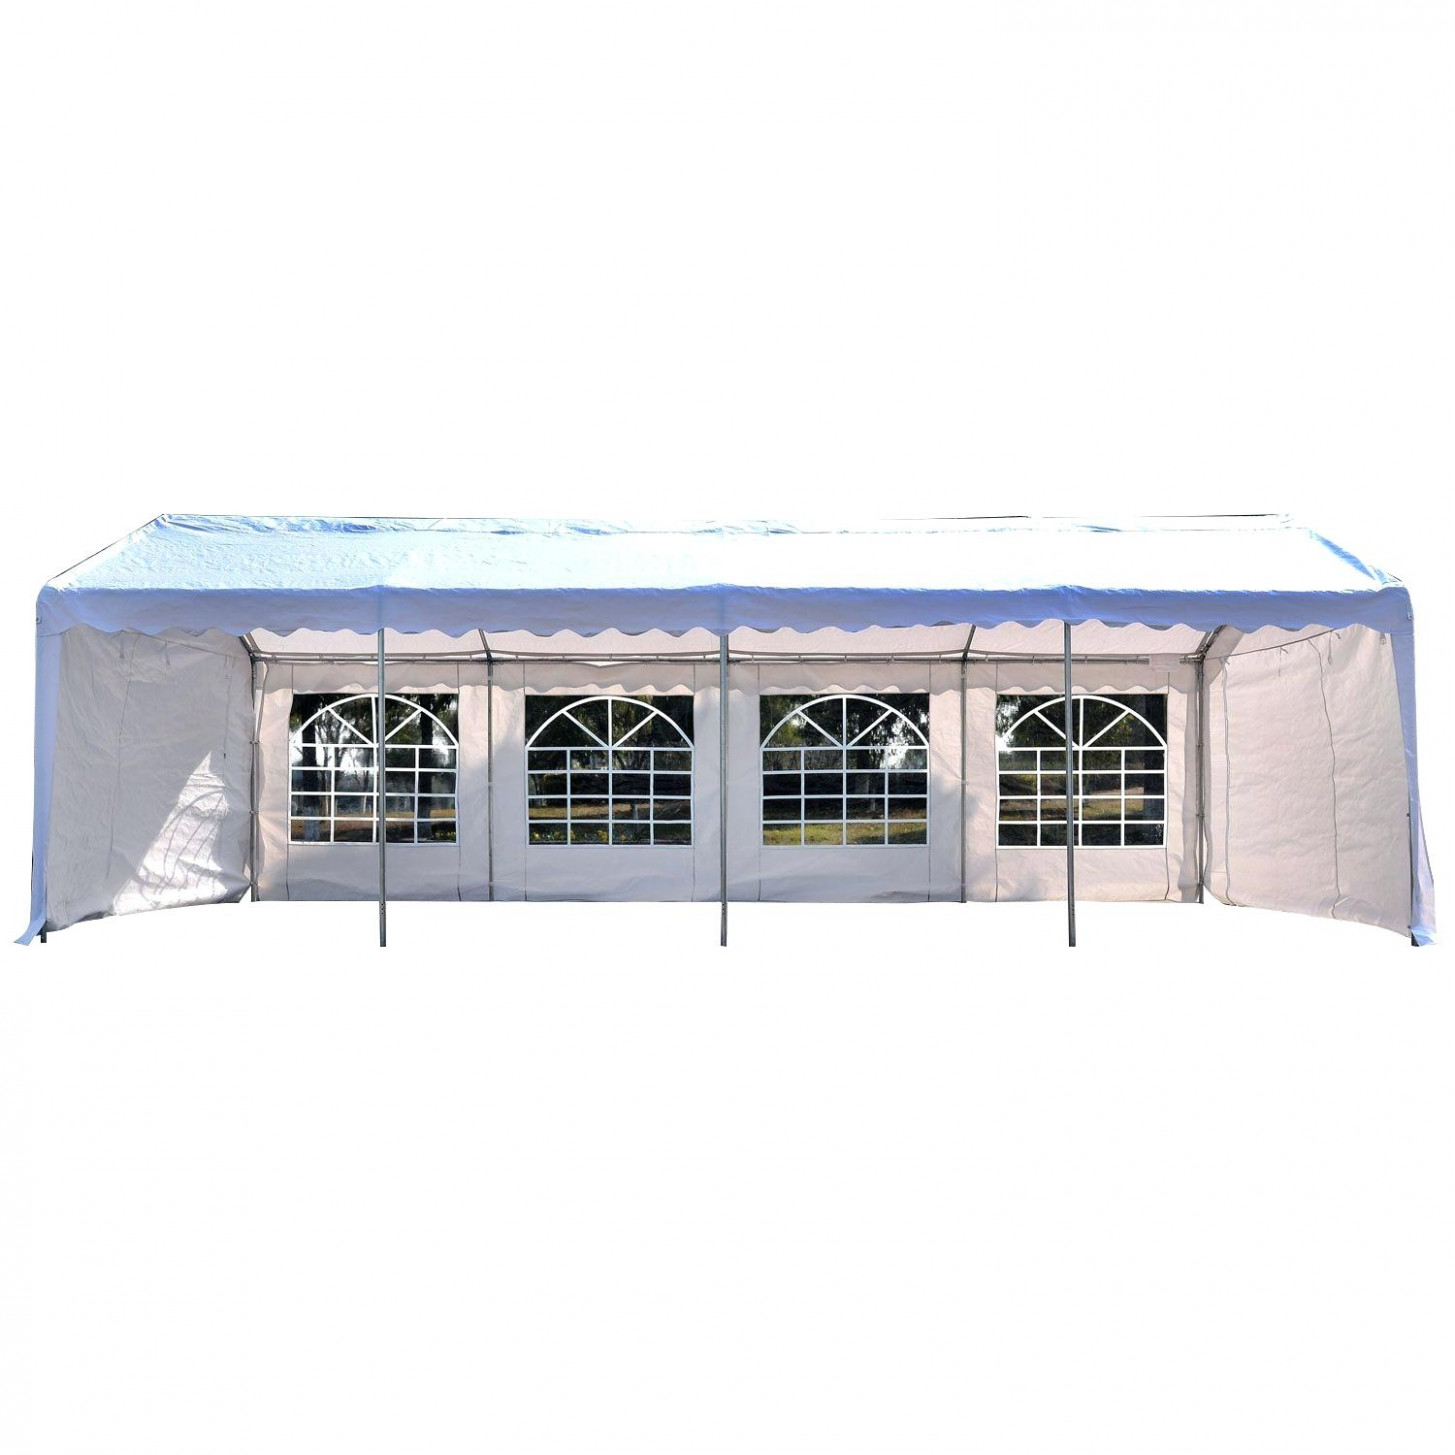 Car Canopy Commercial Grade Canopies Muslin Car Seat Canopy ..